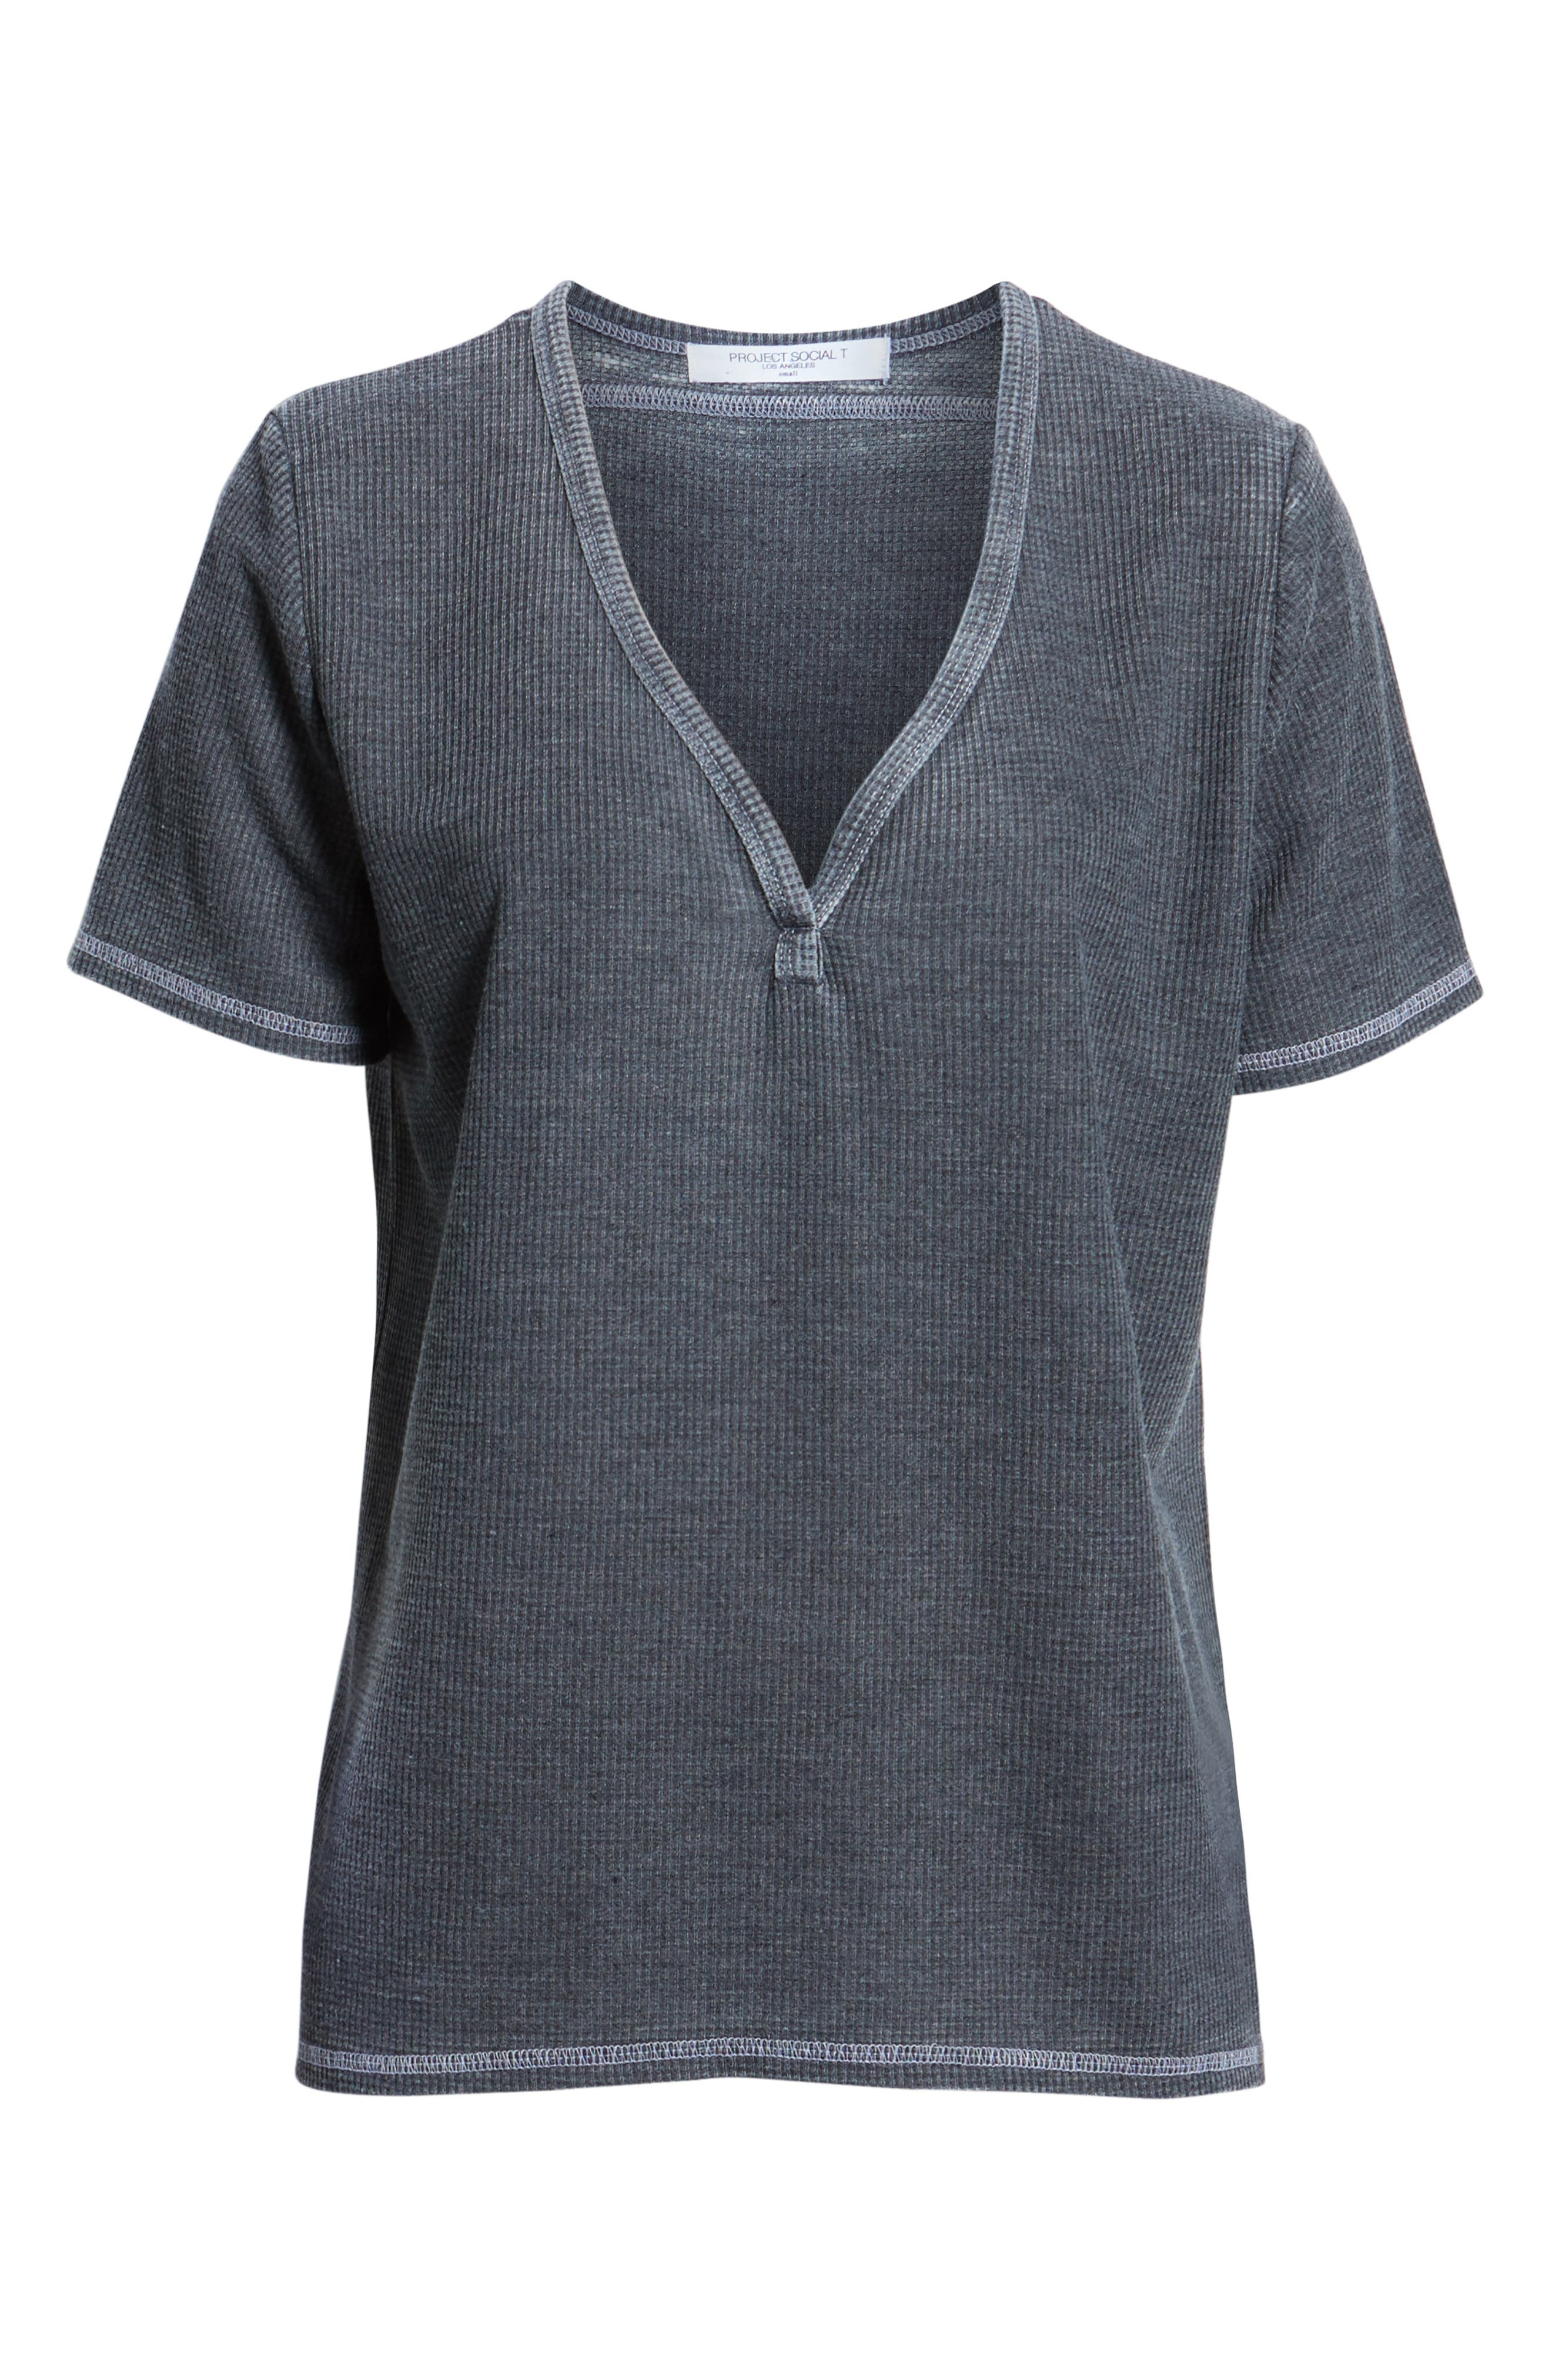 Priestly Thermal Tee,                             Alternate thumbnail 6, color,                             001